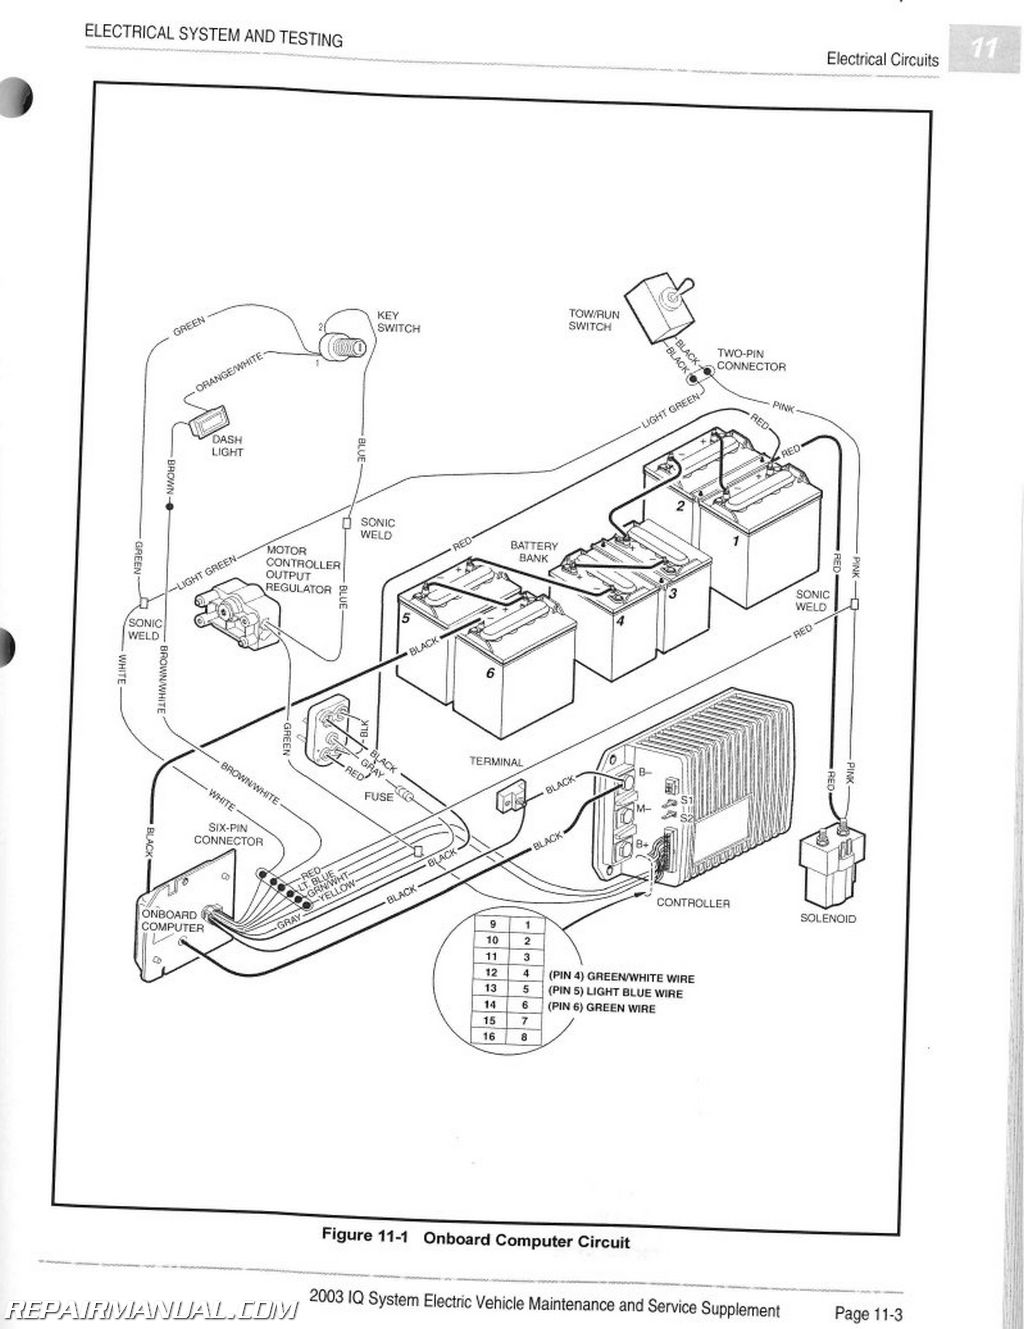 1982 club car wiring diagram wiring diagram for club car golf cart  Club Car Wiring Diagram on club car golf cart parts diagram, 2001 club car gas, 2001 club car cable diagram, 92 gas club car diagram, club car 36v batteries diagram, club cart battery diagram, 2001 club car repair manual, 2001 club car brakes, 2001 club car body, club car electric diagram, 2001 club cart golf, club car electrical diagram, 2001 club car horn, 2001 club car models, 2001 club car accessories, 2001 club car ds, club car 290 engine diagram, 2001 club car parts diagram, club car schematic diagram, 2001 club car transmission,